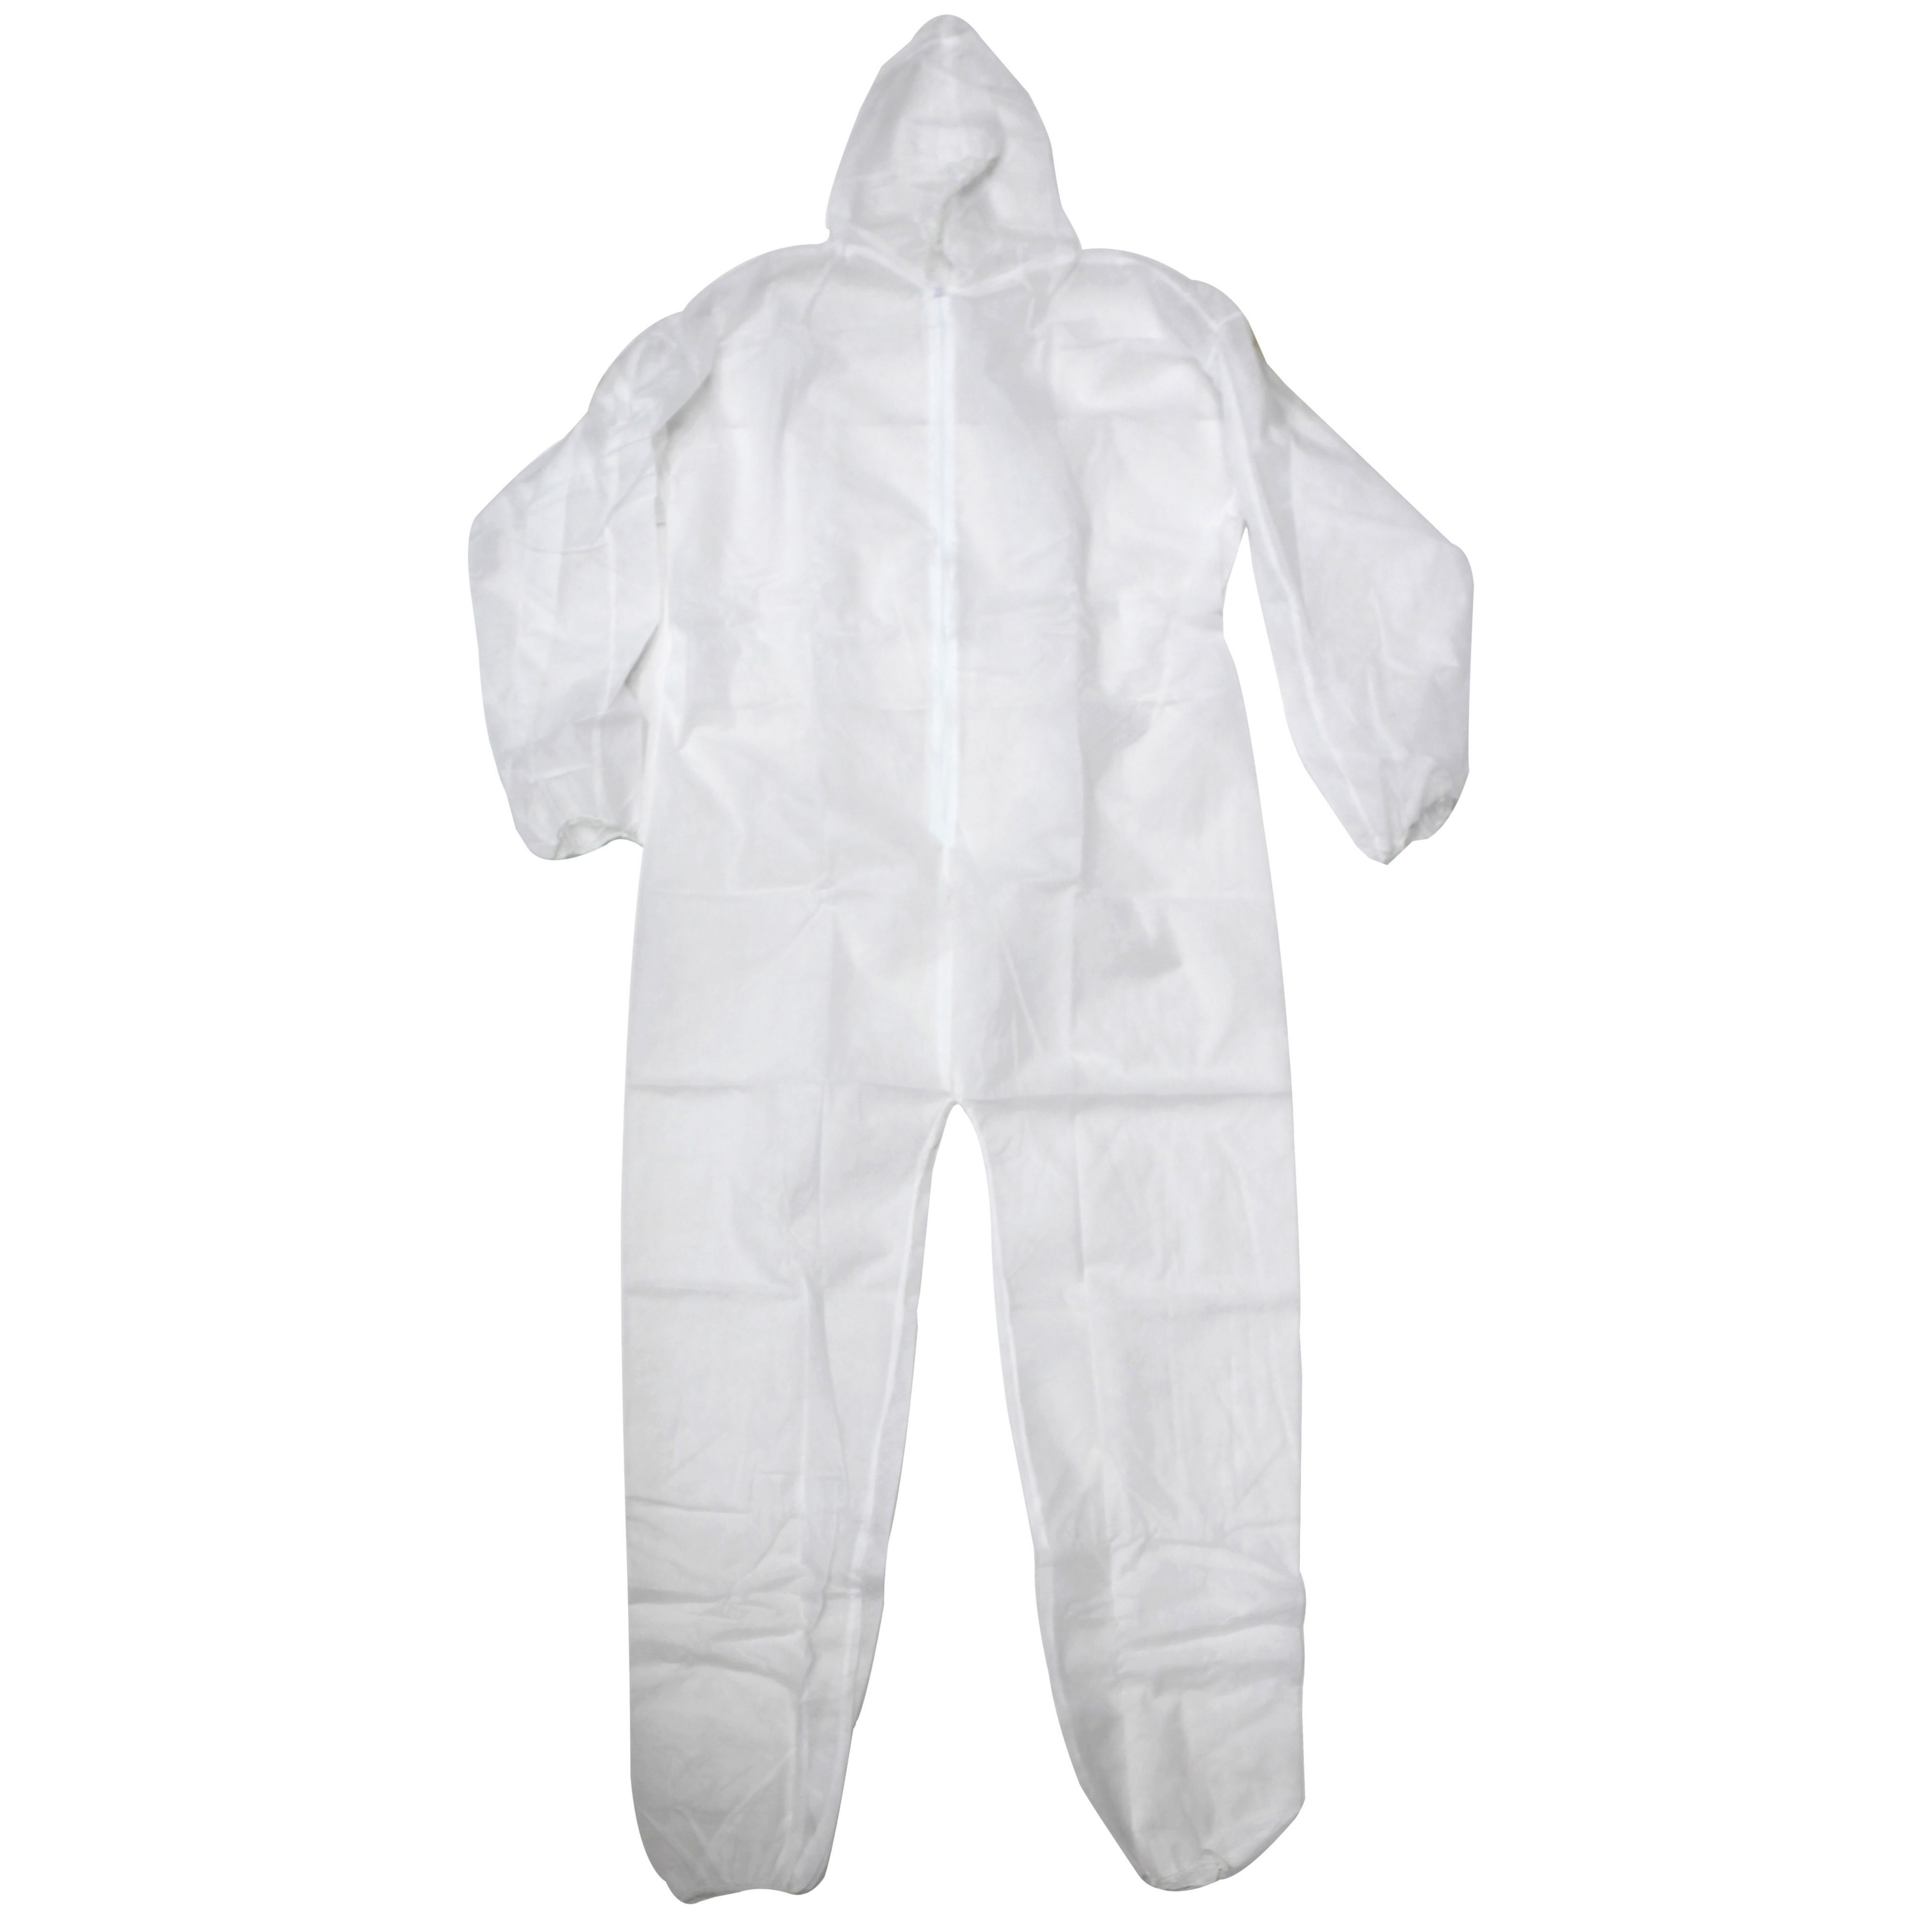 Diall White Disposable Coverall Extra Large Departments